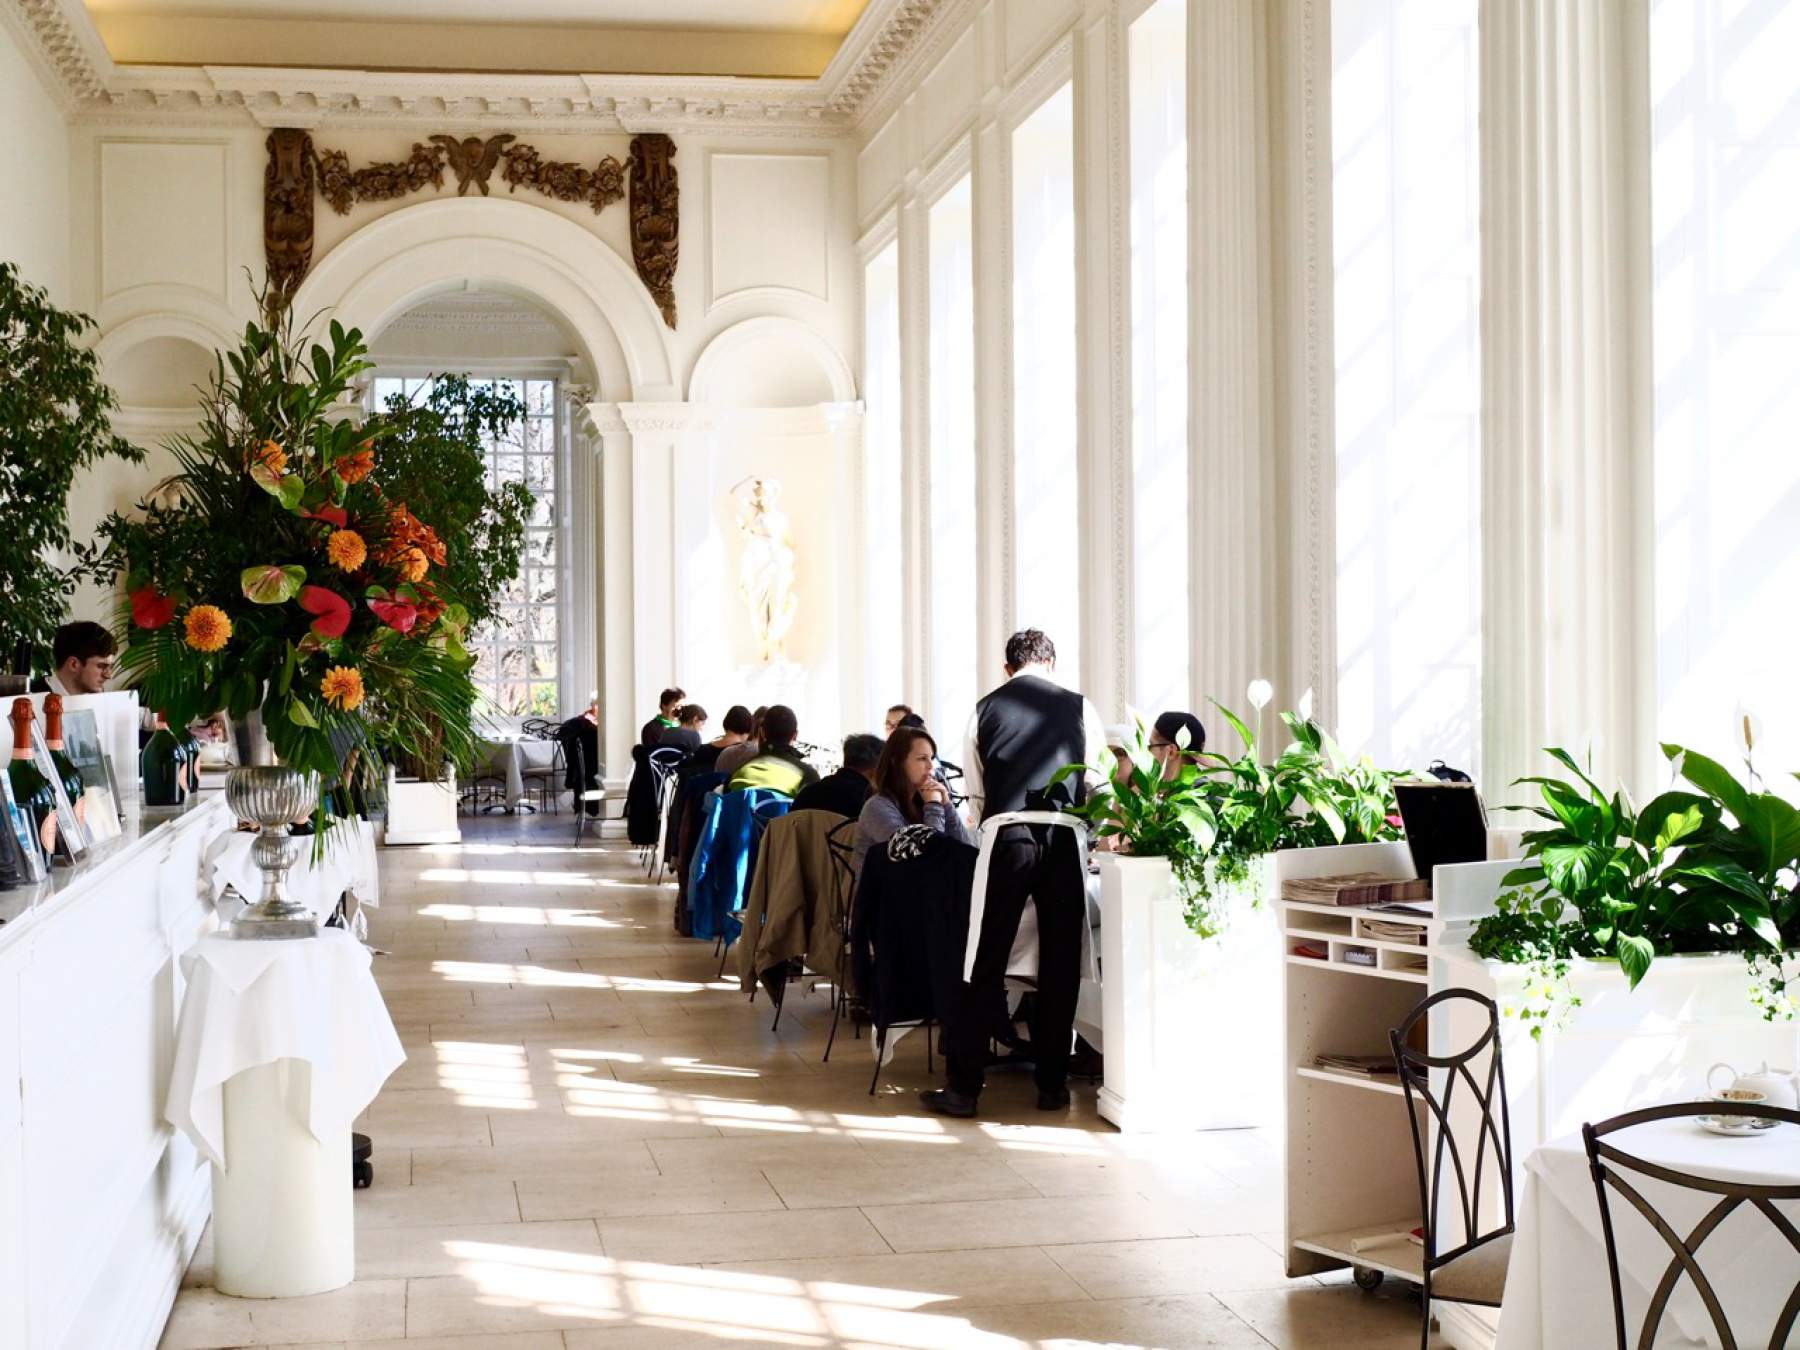 The Orangery at Kensington Palace, London